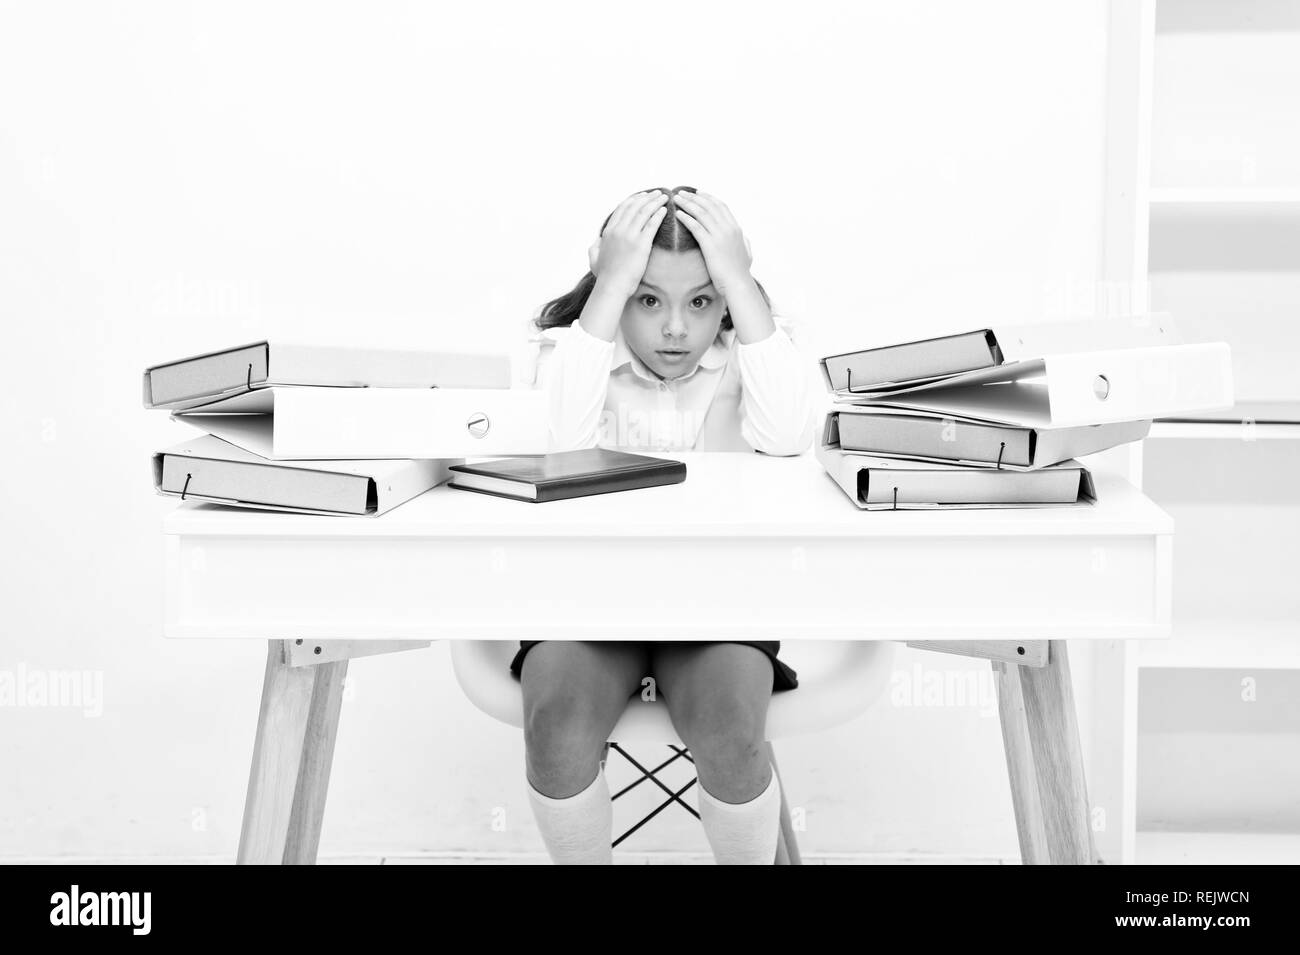 Work concept. Little child stressed with paper work. School girl overloaded with file work. That is too much work for me. - Stock Image